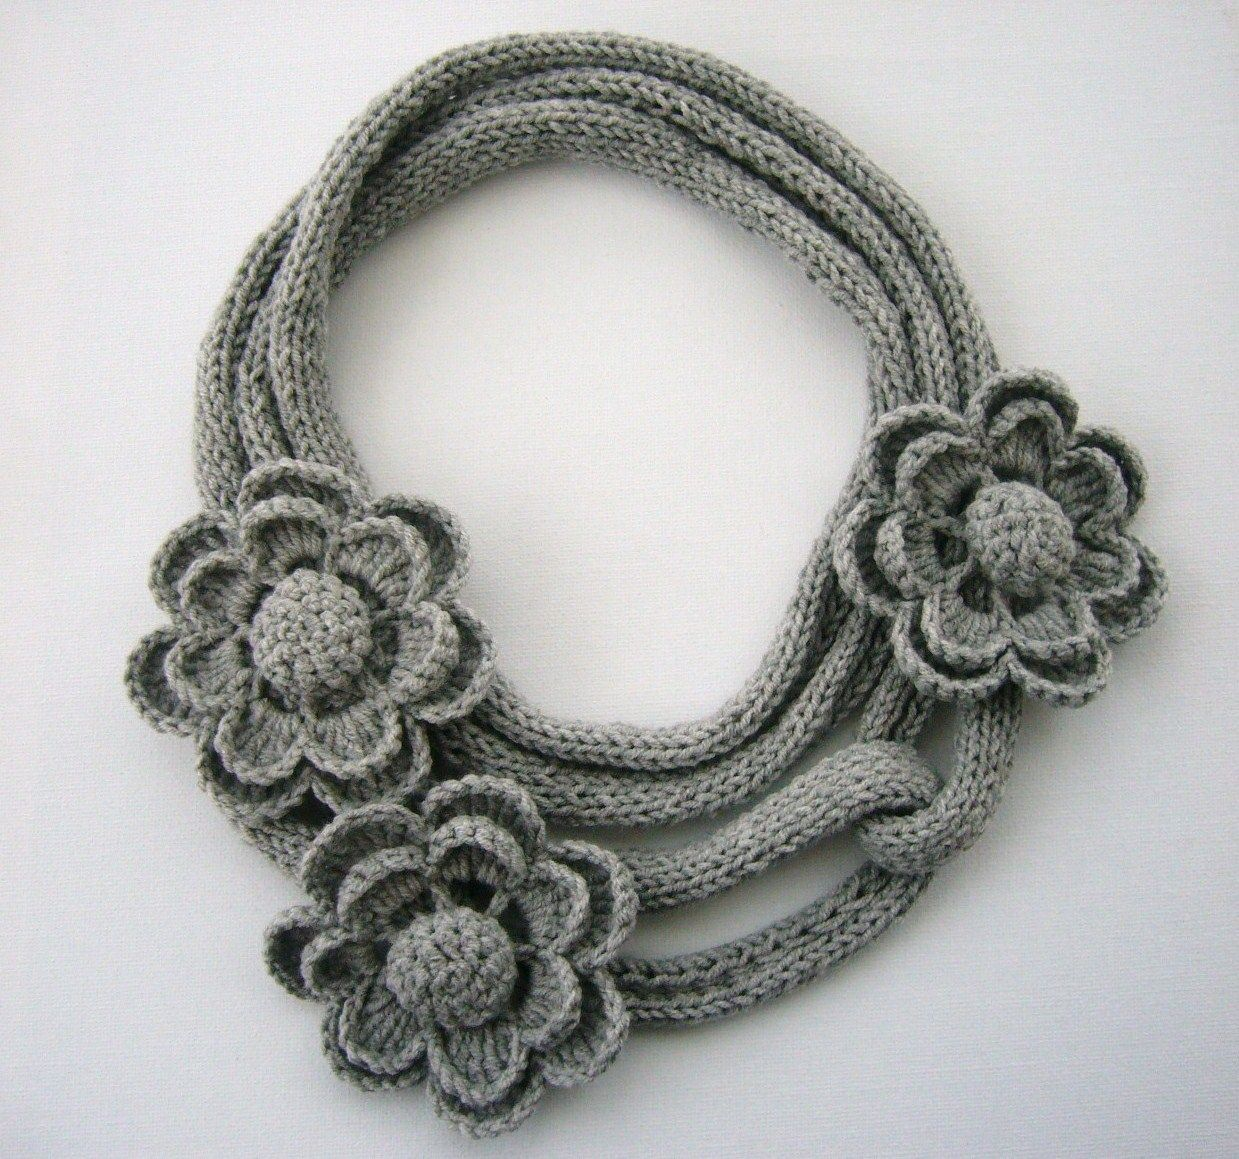 Crochet Applique Flowers and Leaves Set Any Colour - Made to Order ...